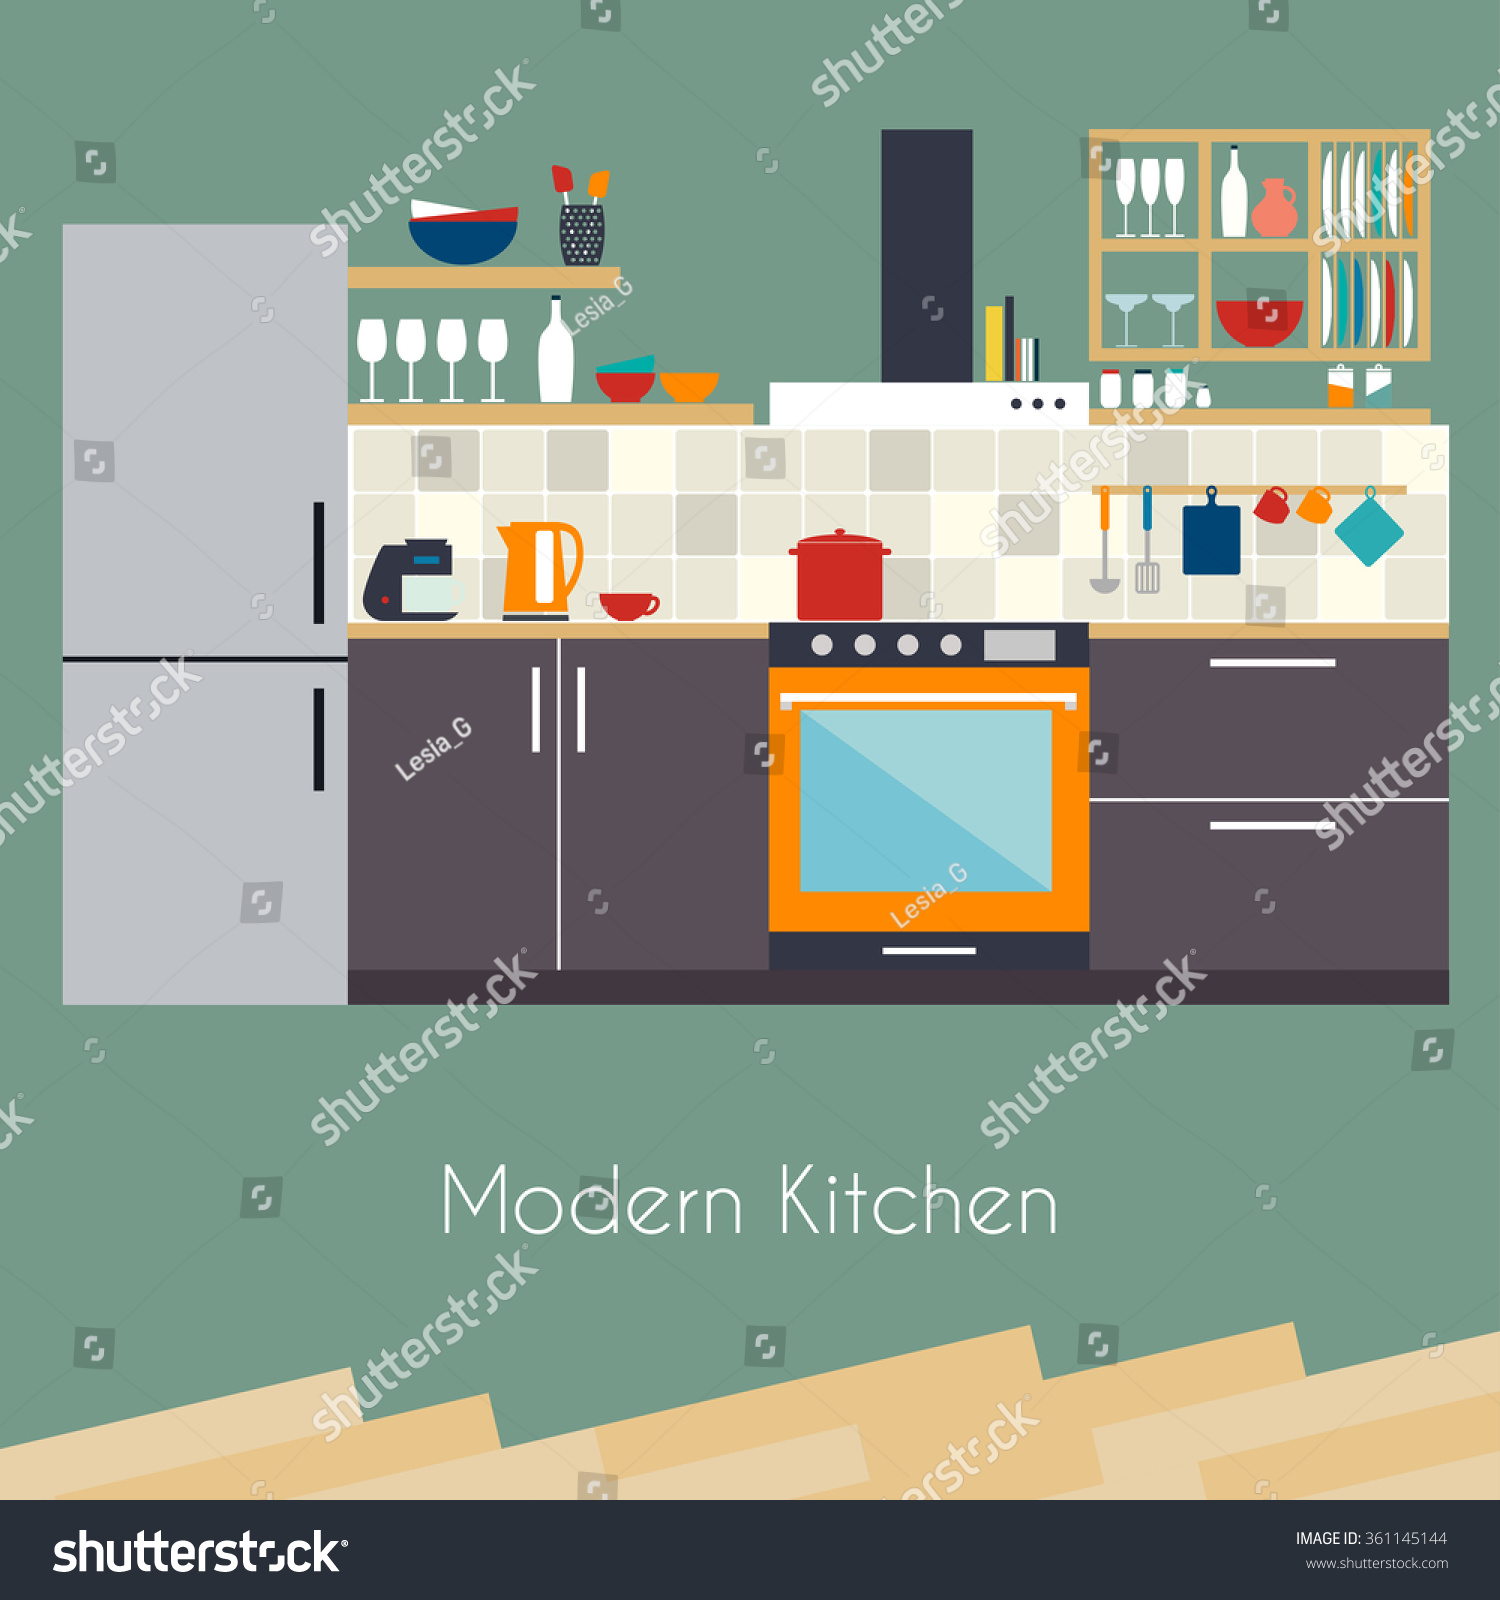 Interior Design For Kitchen For Flats: Kitchen Interior Flat Design Kitchen Concept Stock Vector